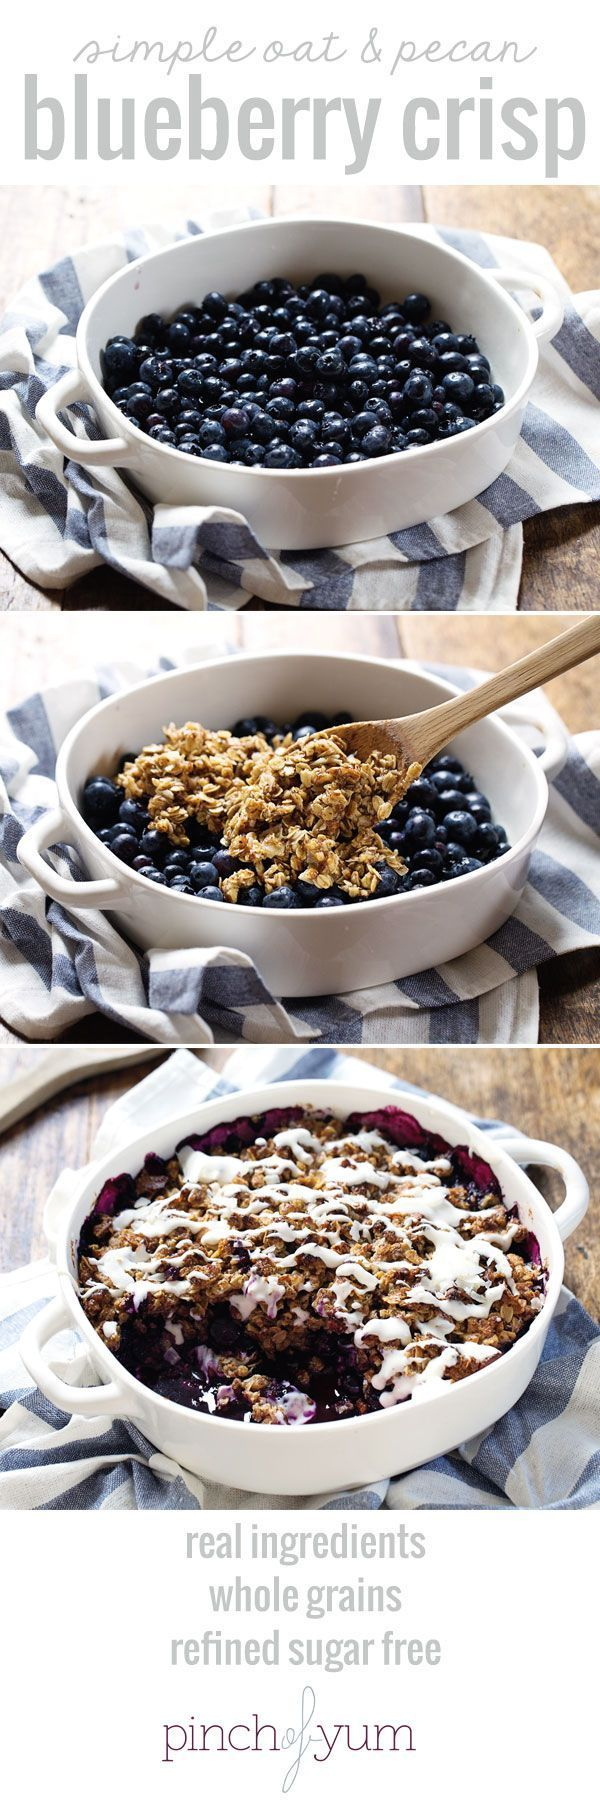 Simple Oat and Blueberry Crisp - warm, juicy blueberries covered with a yummy oat crumble and topped with a coconut drizzle. Refined sugar free and whole grain! | pinchofyum.com #blueberry #crisp #recipe #fruit #dessert